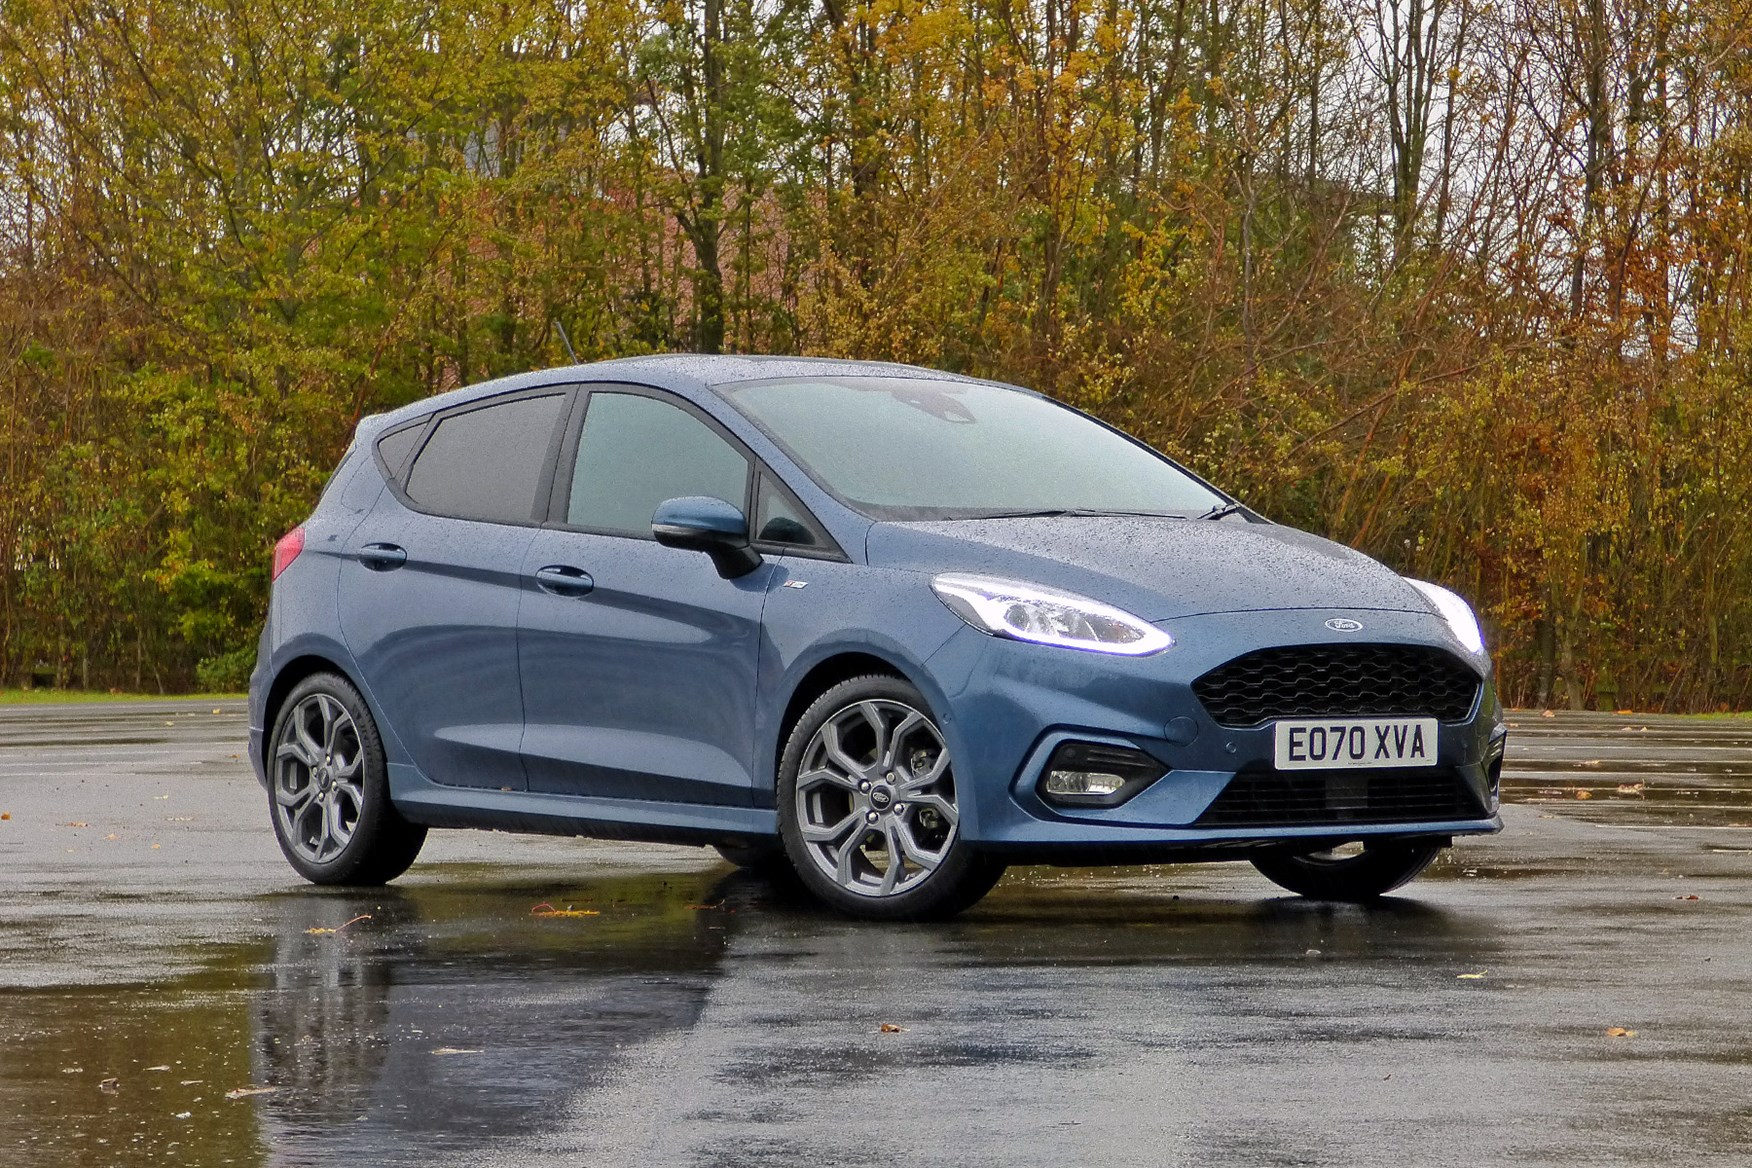 The bestselling cars in the UK